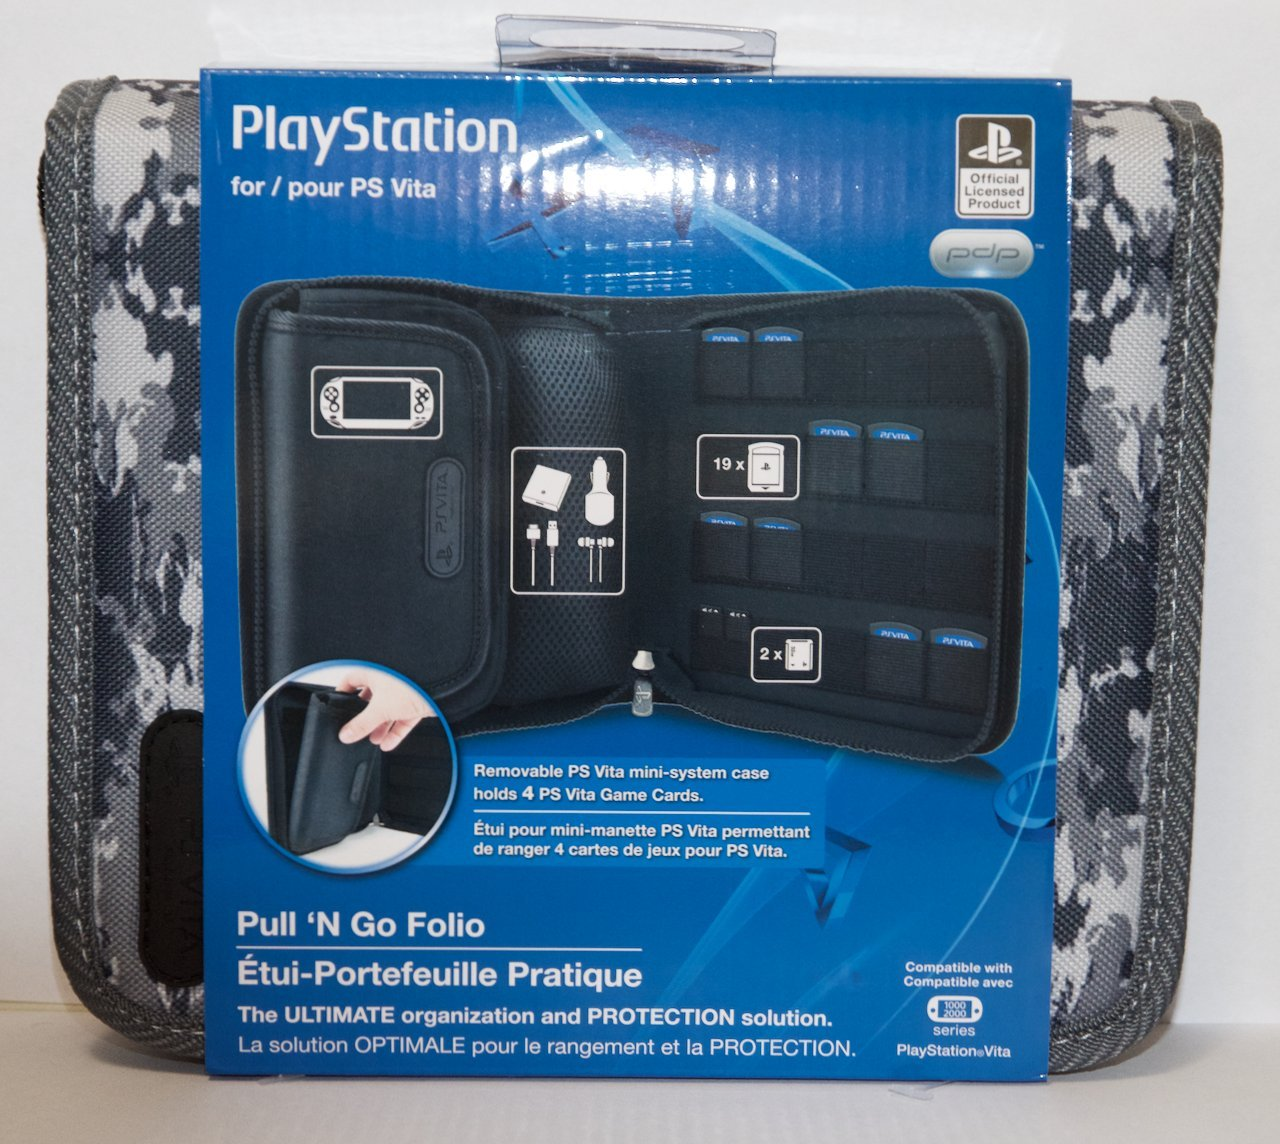 Amazon.com: PDP PSVita Pull N Go Folio: Video Games